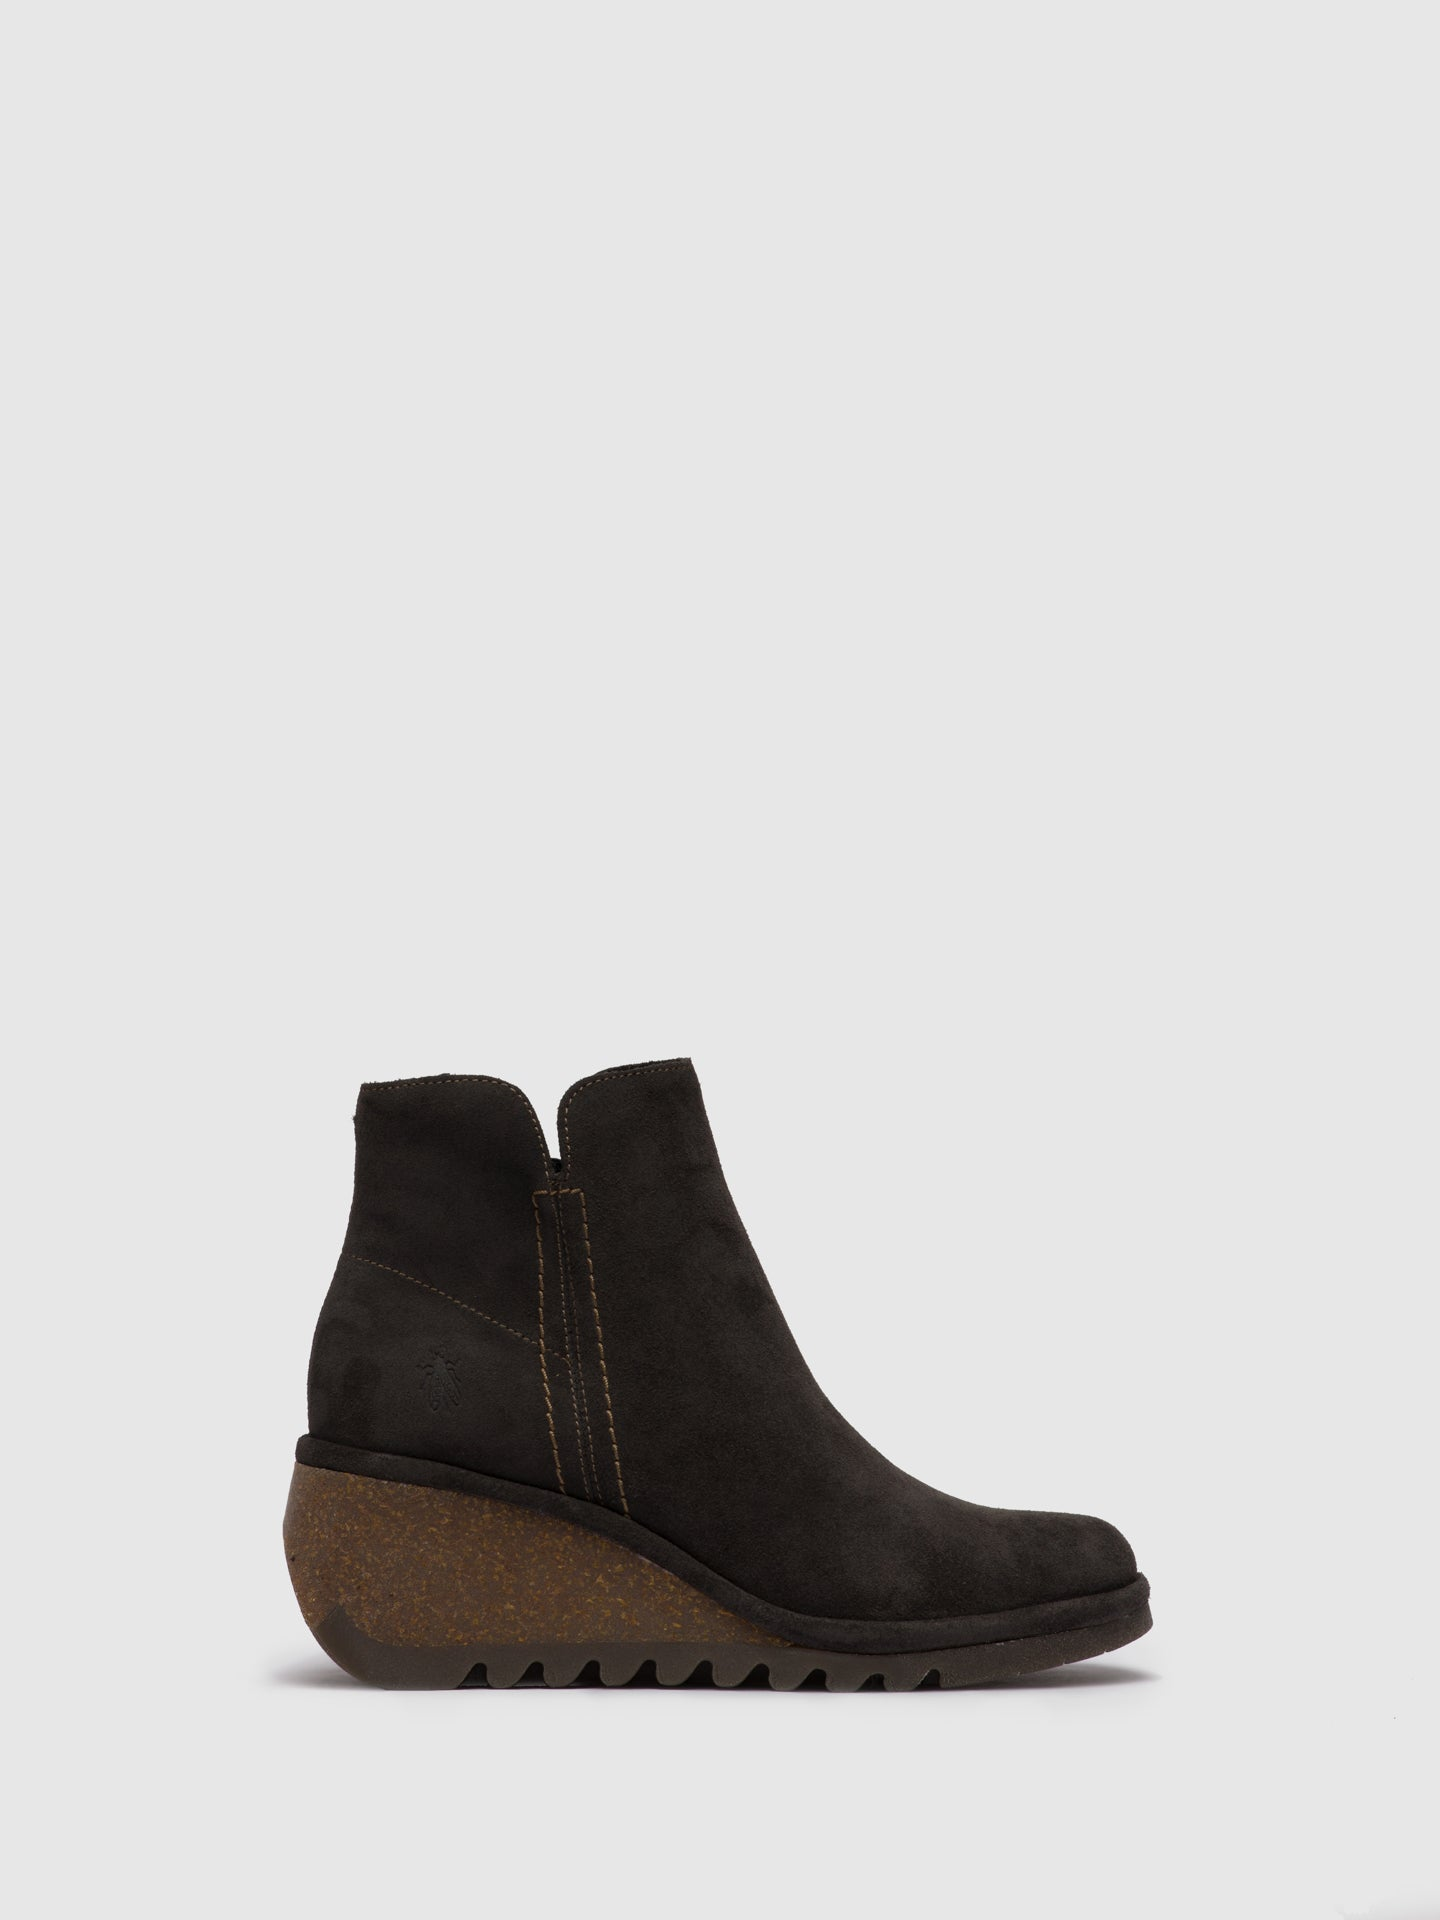 Fly London Botins com Fecho NILO256FLY OILSUEDE DIESEL